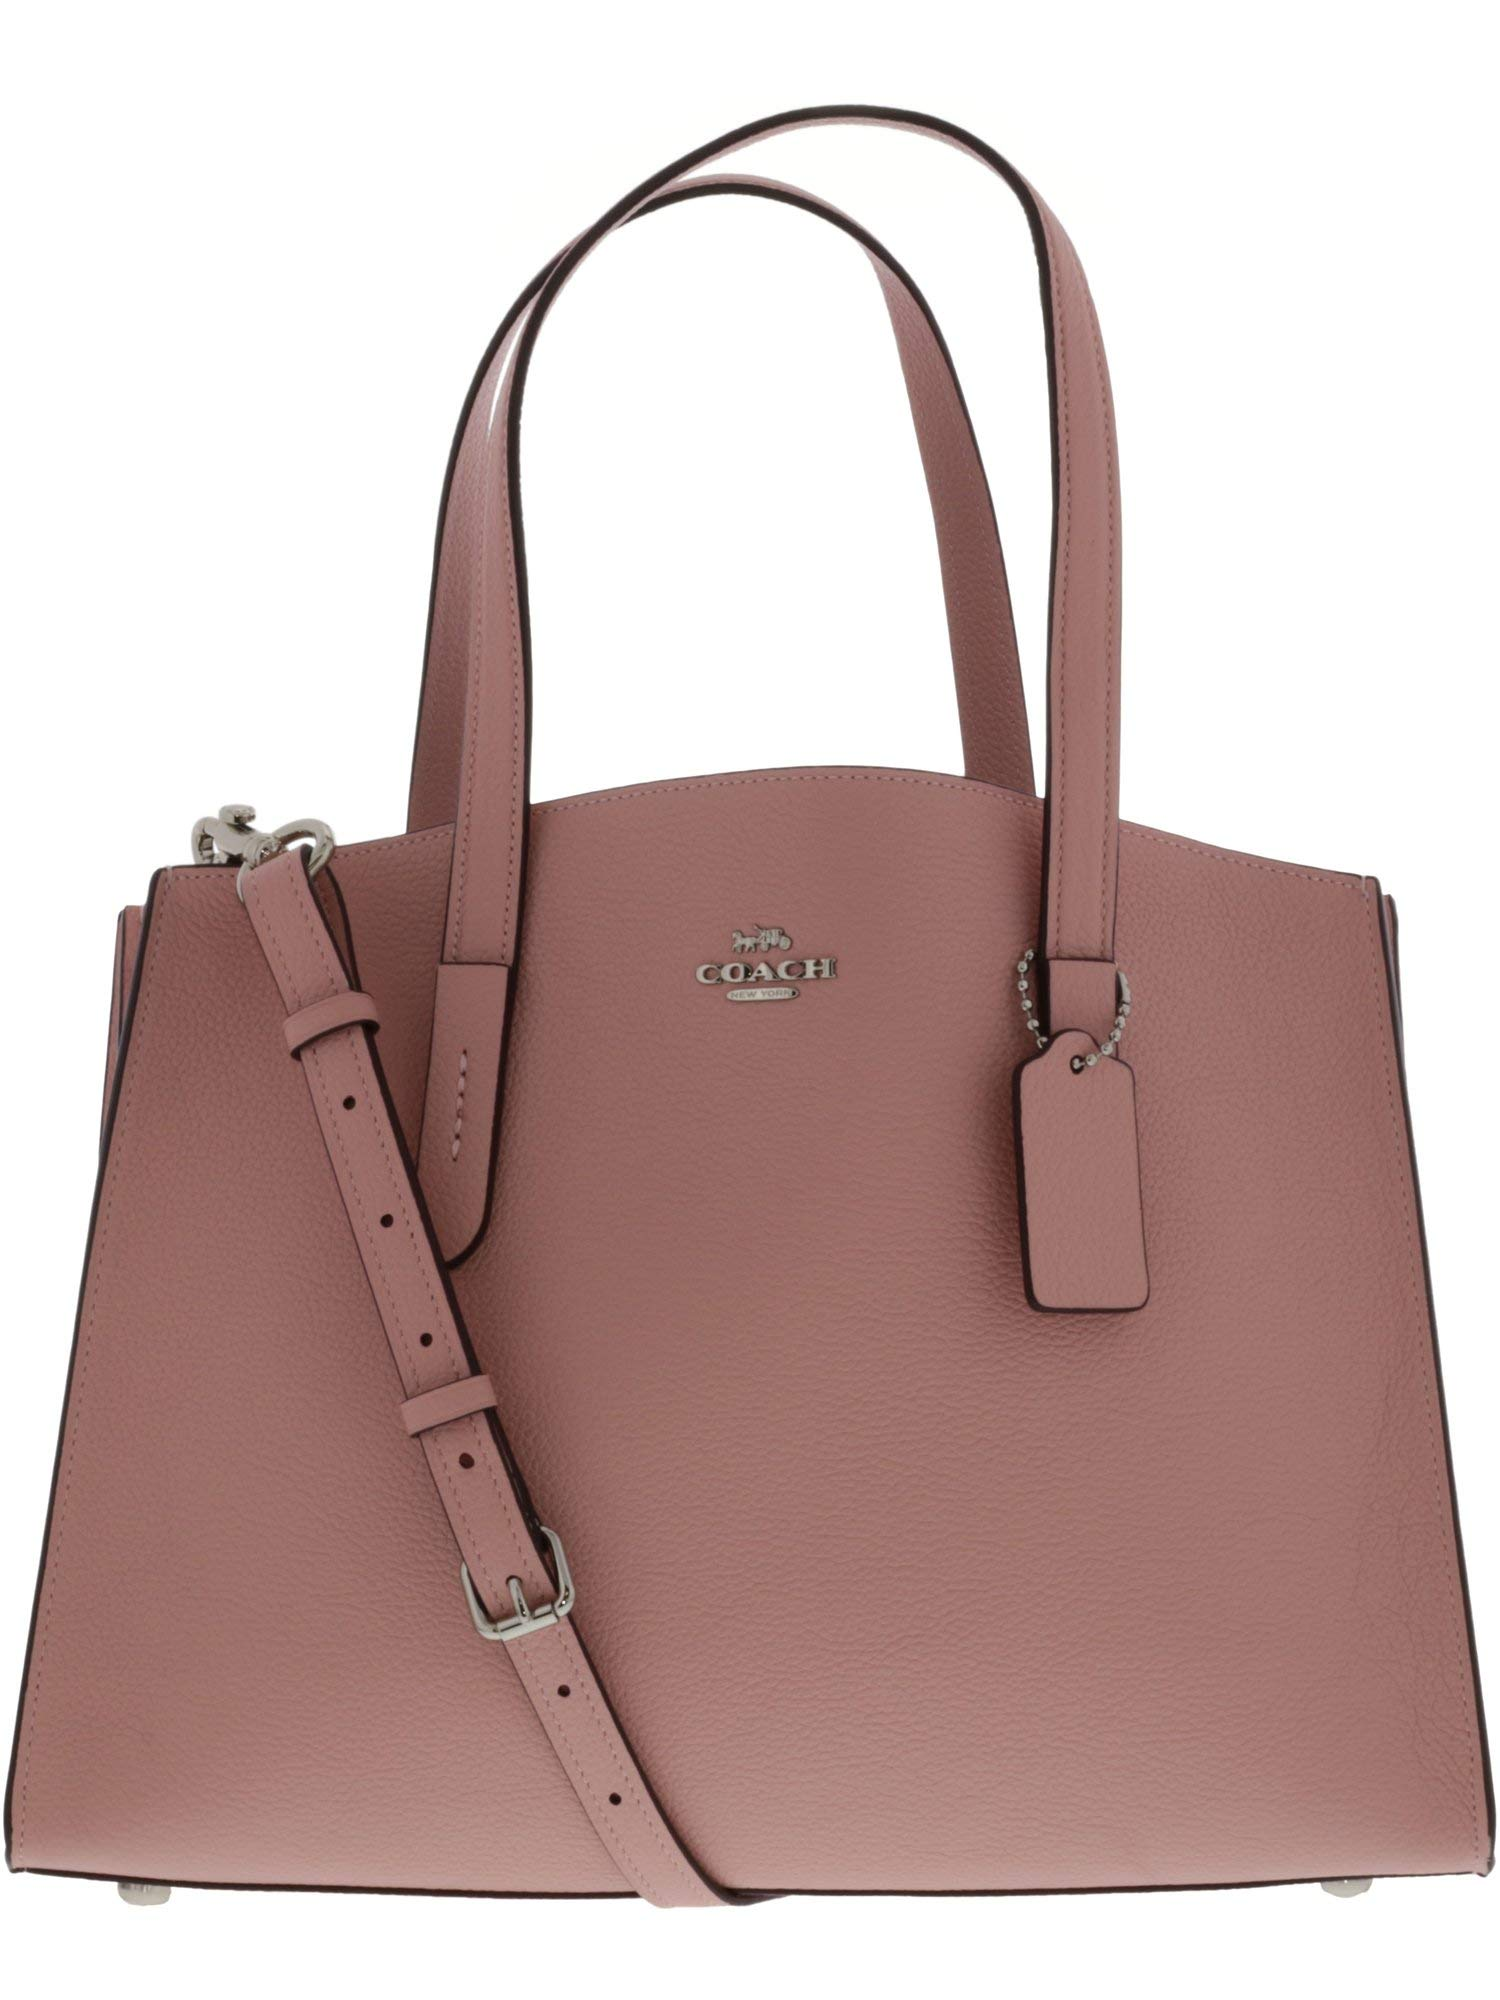 COACH Womens Polished Pebble Leather Charlie Carryall